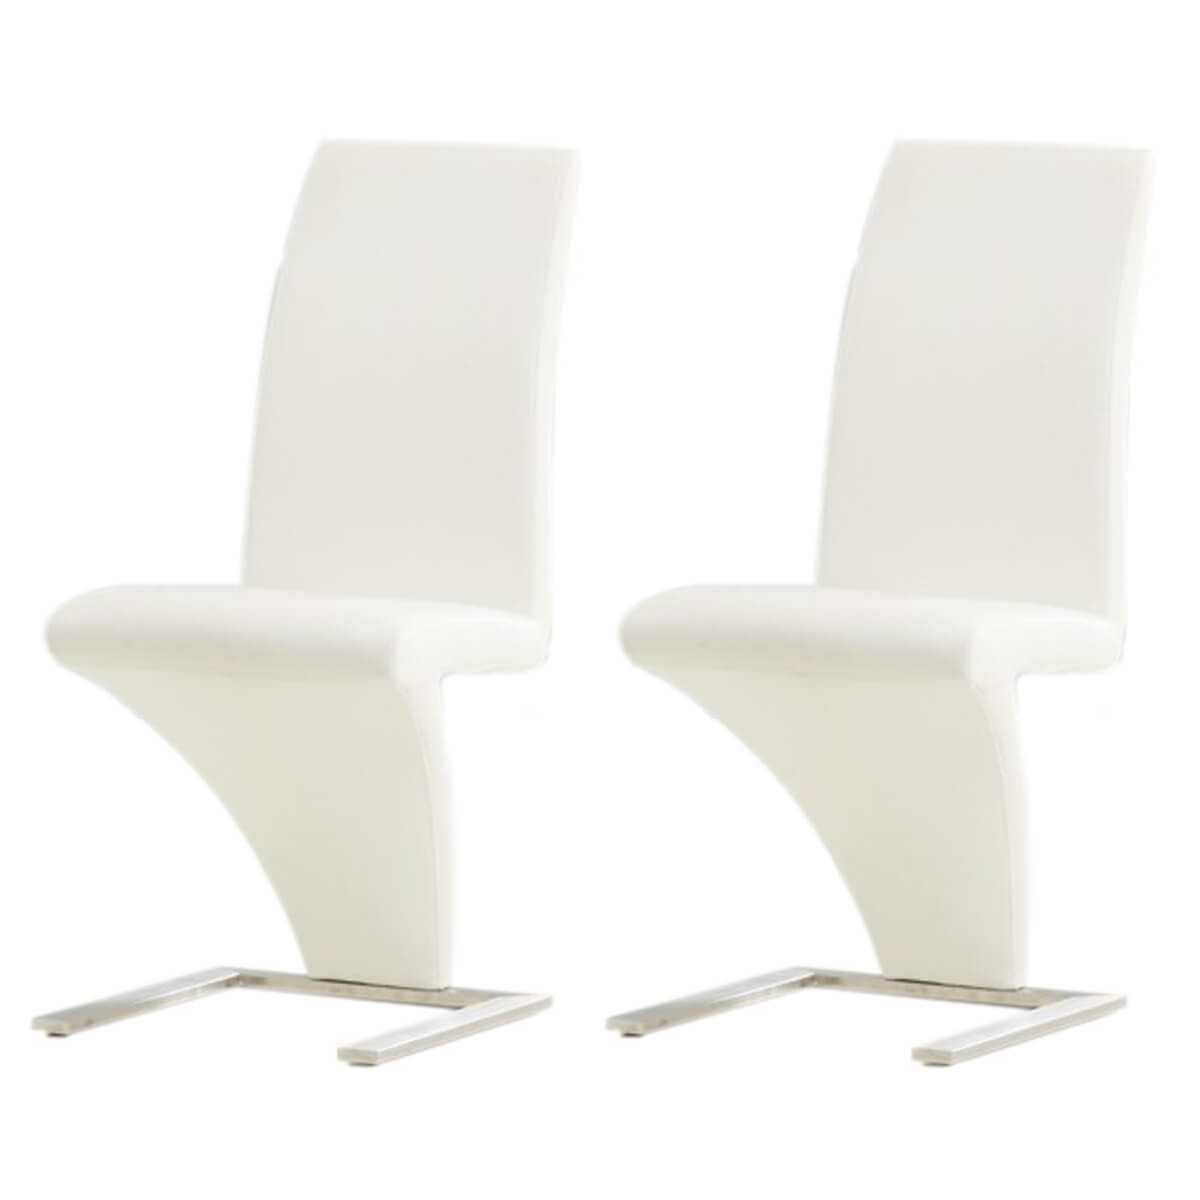 Z Shaped Dining Chairs White Faux Leather 1